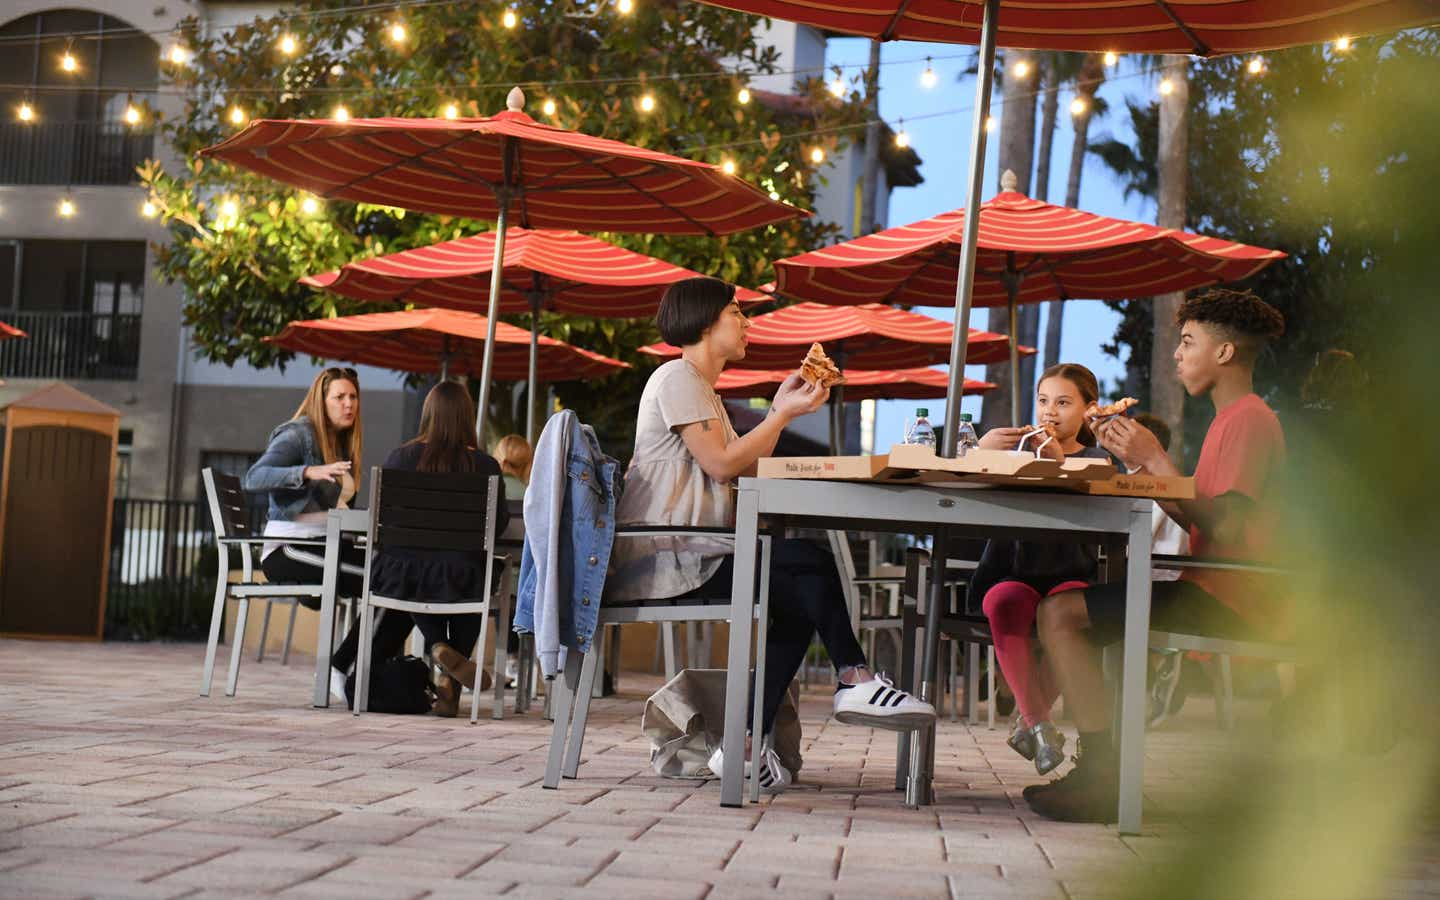 A group of people eating outside of Paisan Pizzeria at Orange Lake Resort near Orlando, Florida.